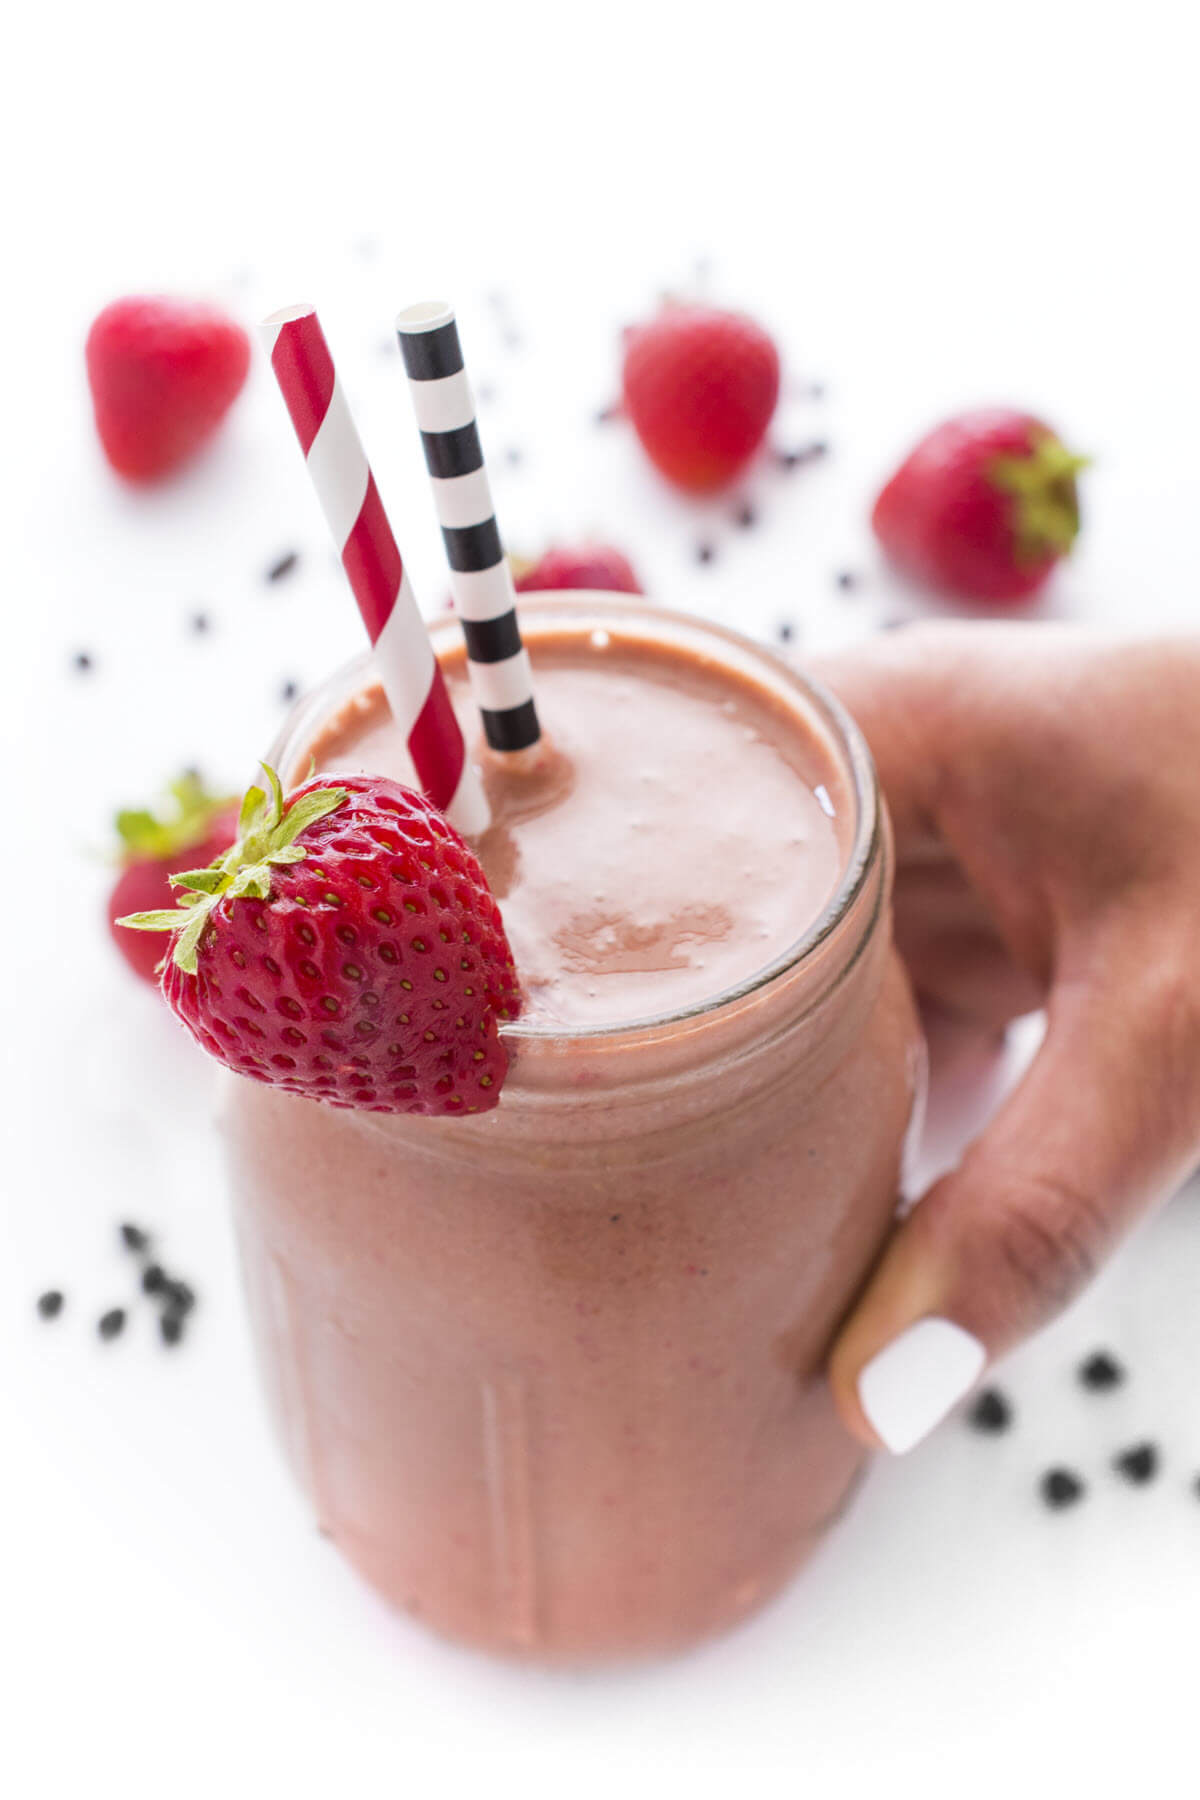 Chocolate and Strawberry smoothie in a glass